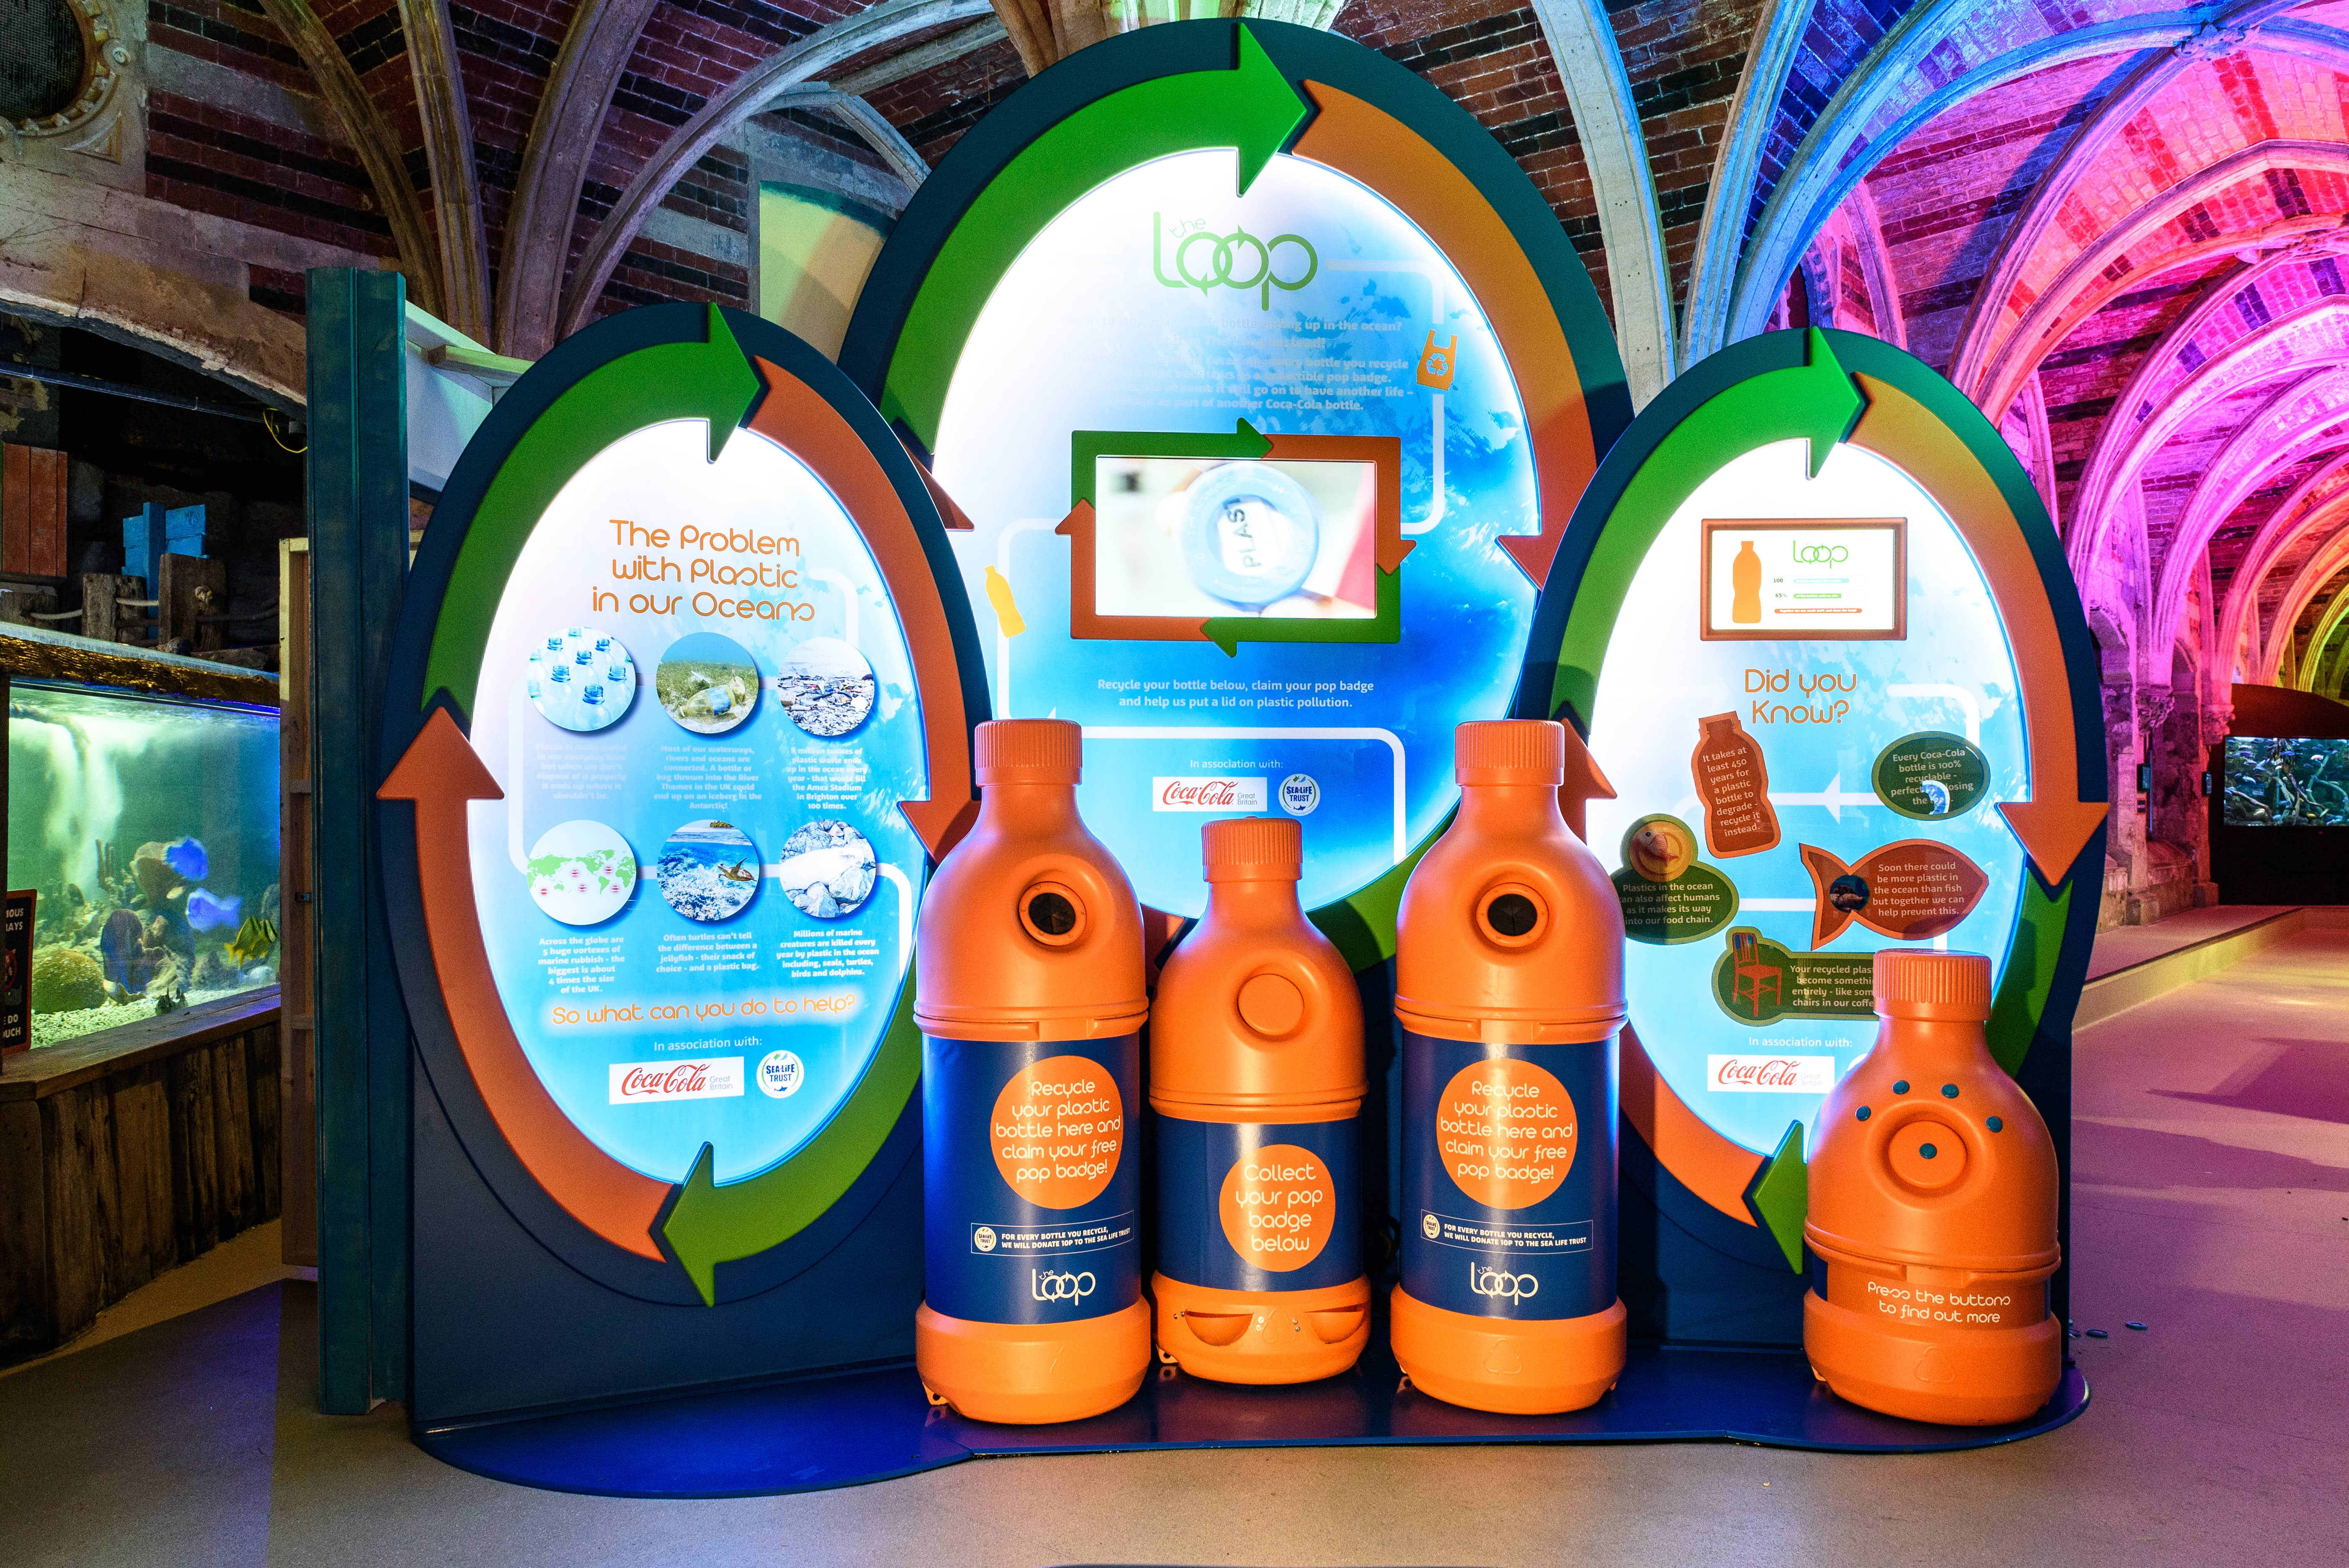 The Loop Recycling Zone at SEA LIFE Brighton